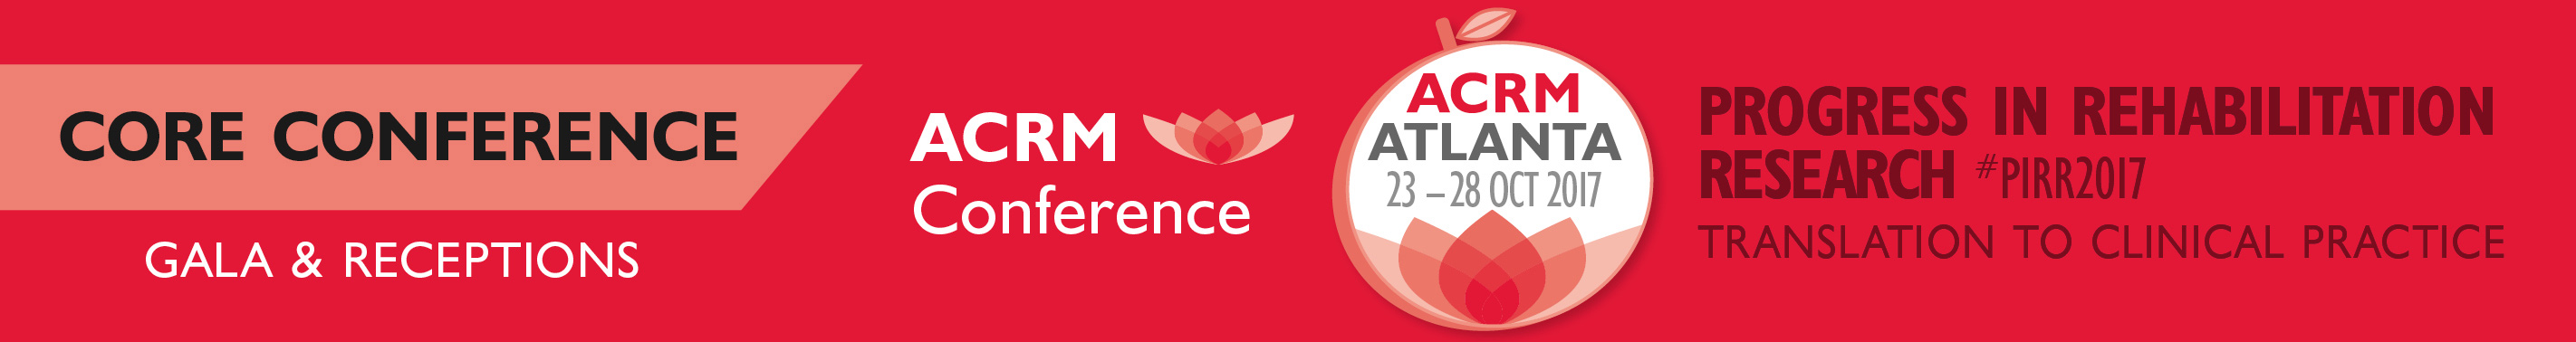 ACRM Core Conference Gala & Receptions